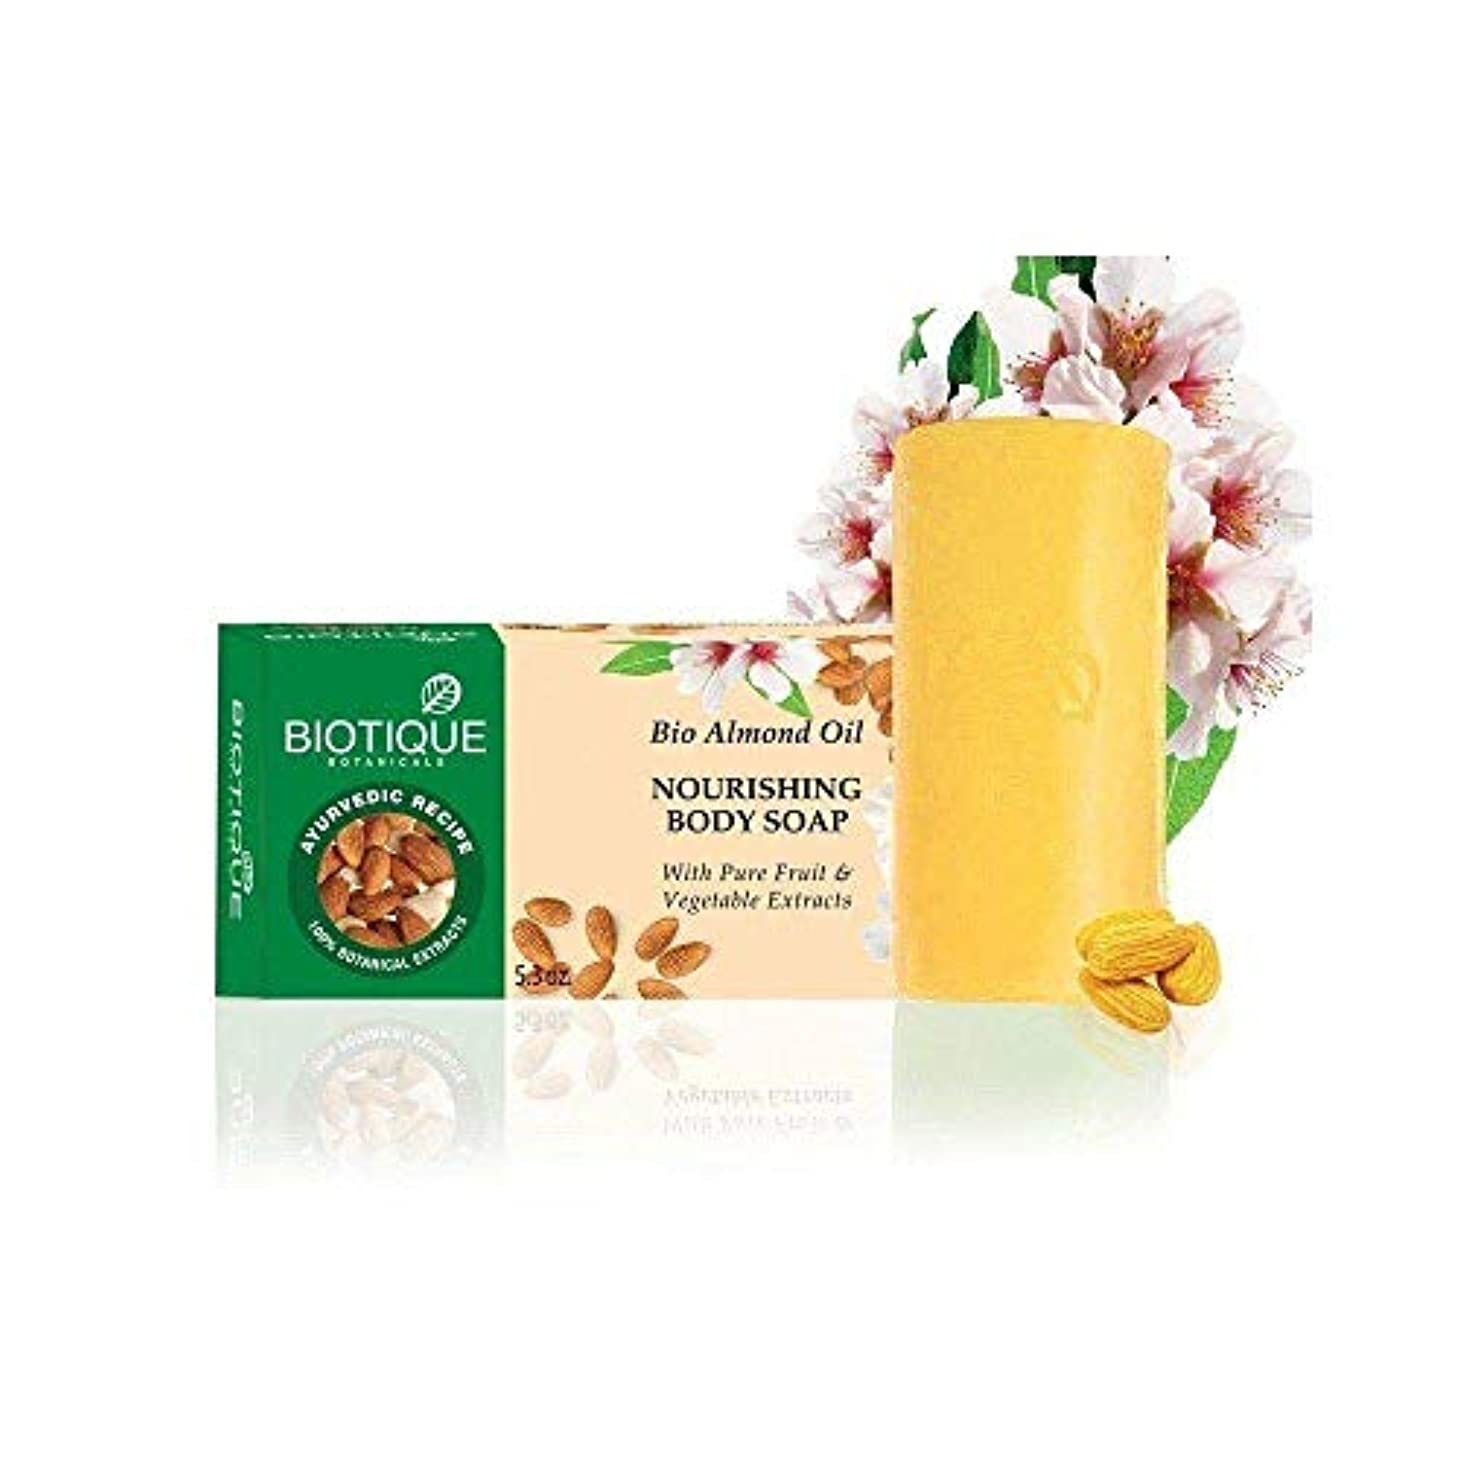 ミシン大きさ北米Biotique Bio Almond Oil Nourishing Body Soap - 150g (Pack of 2) wash Impurities Biotique Bio Almond Oilナリッシングボディソープ...